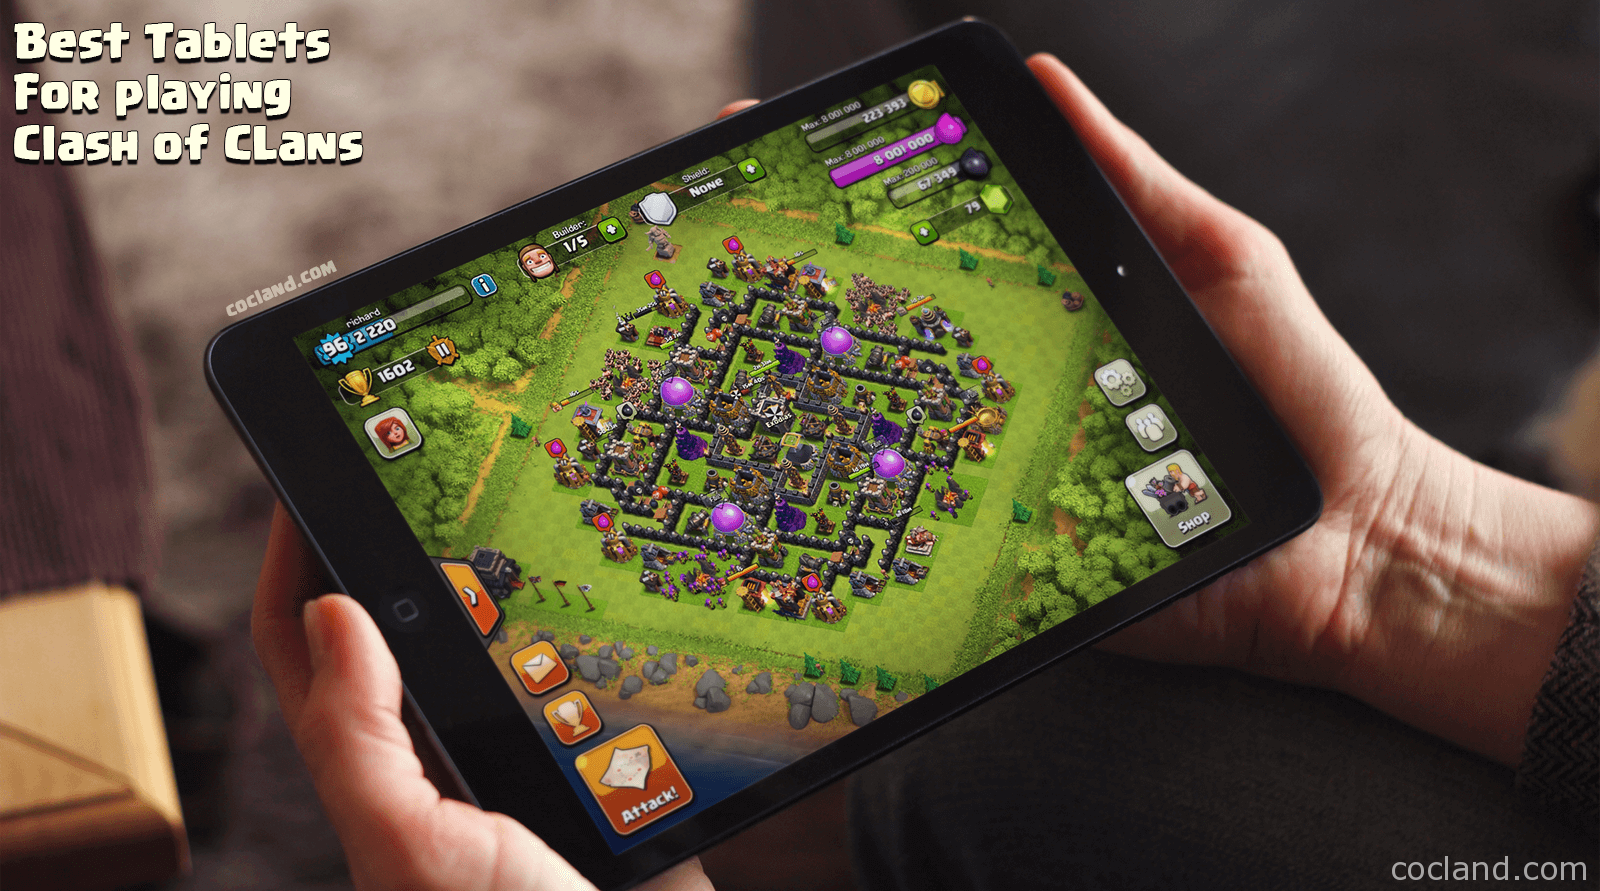 Top Tablets for Clash of Clans